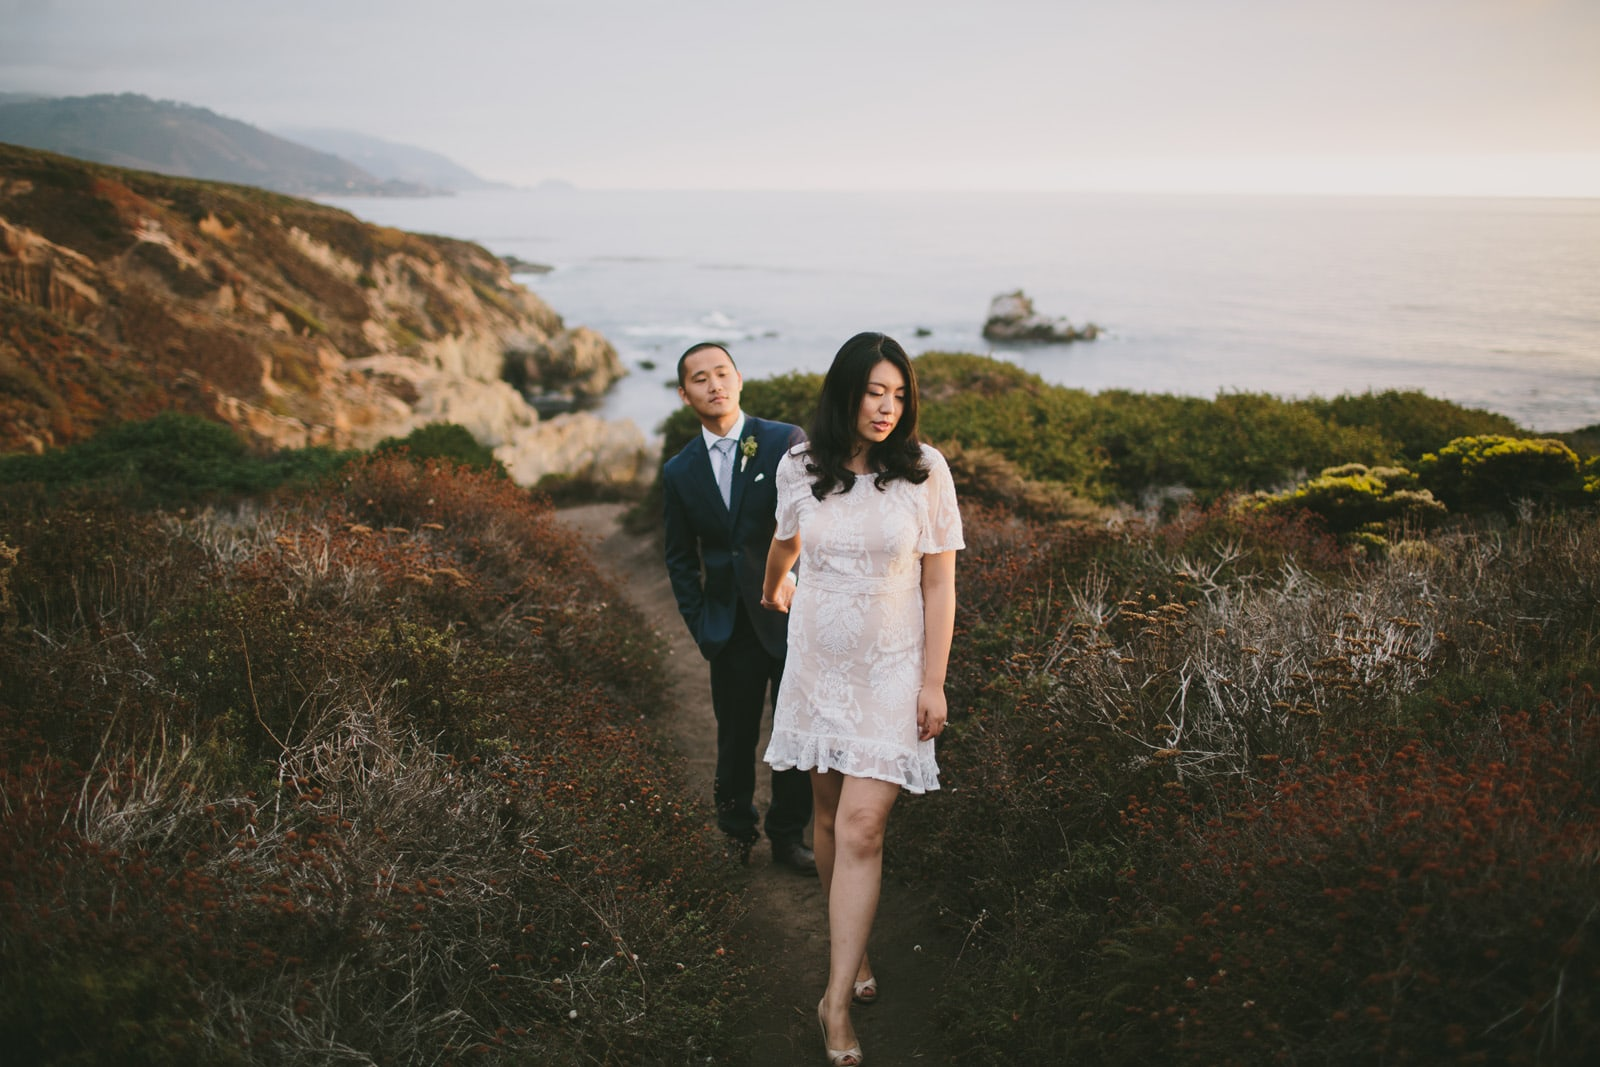 Glen_Oaks_Big_Sur_Wedding_039